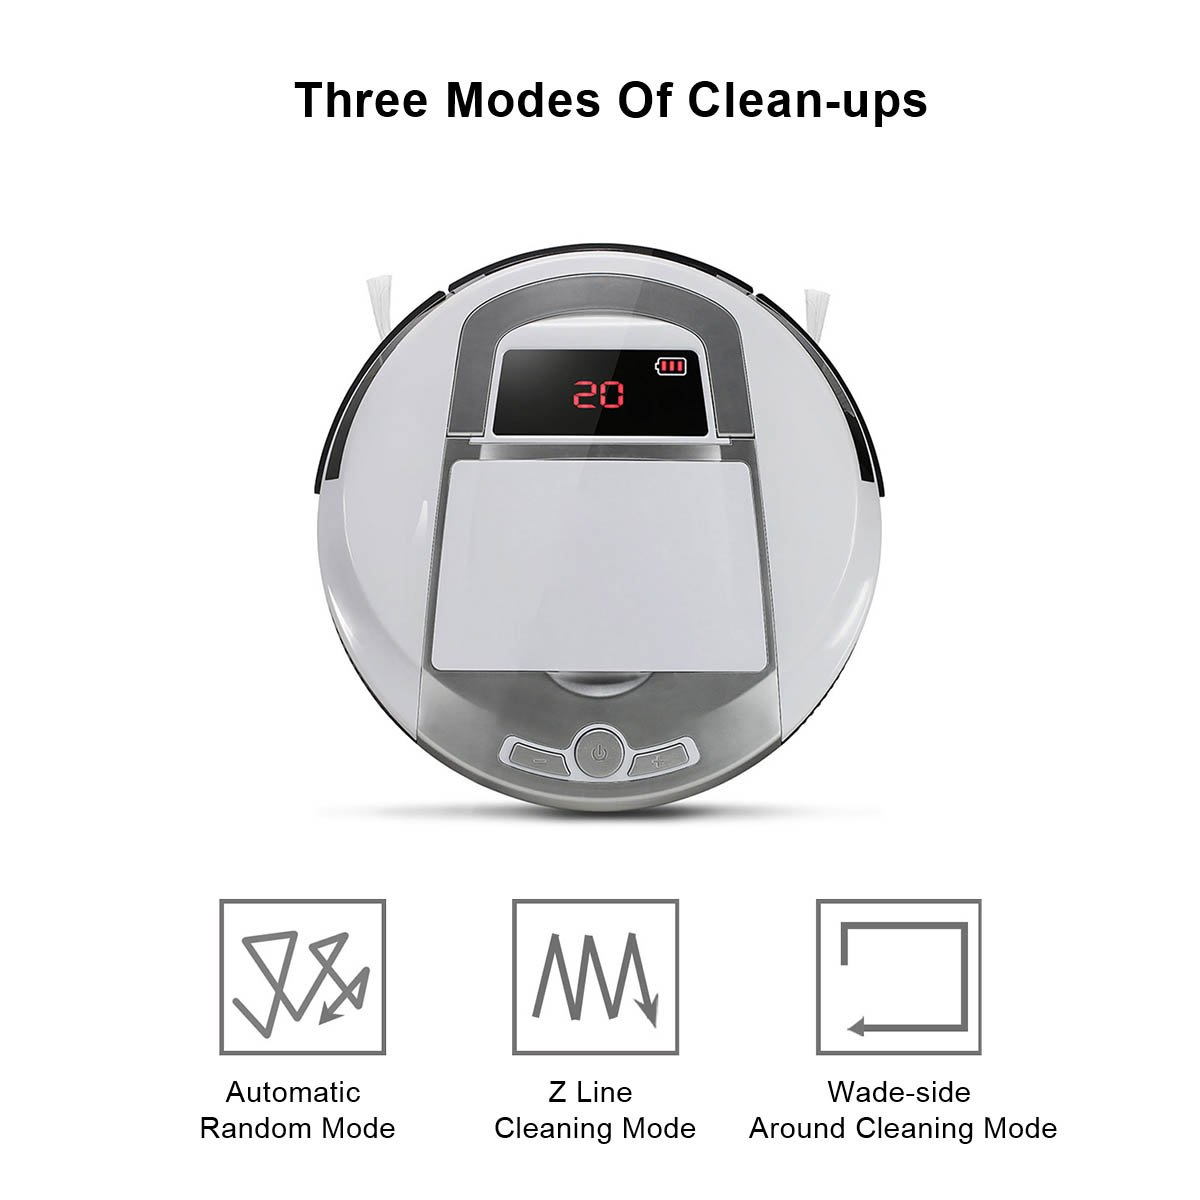 Robotic Vacuum Cleaner, Rechargeable Robotic Vacuum with Strong Suction and HEPA Double Filter, Anti-Cliff and Anti-Bump Sensor Robot for Pet Hair, Fur, Allergens, Thin Carpet, Hardwood and Tile Floor by FORTUNE DRAGON (Image #3)